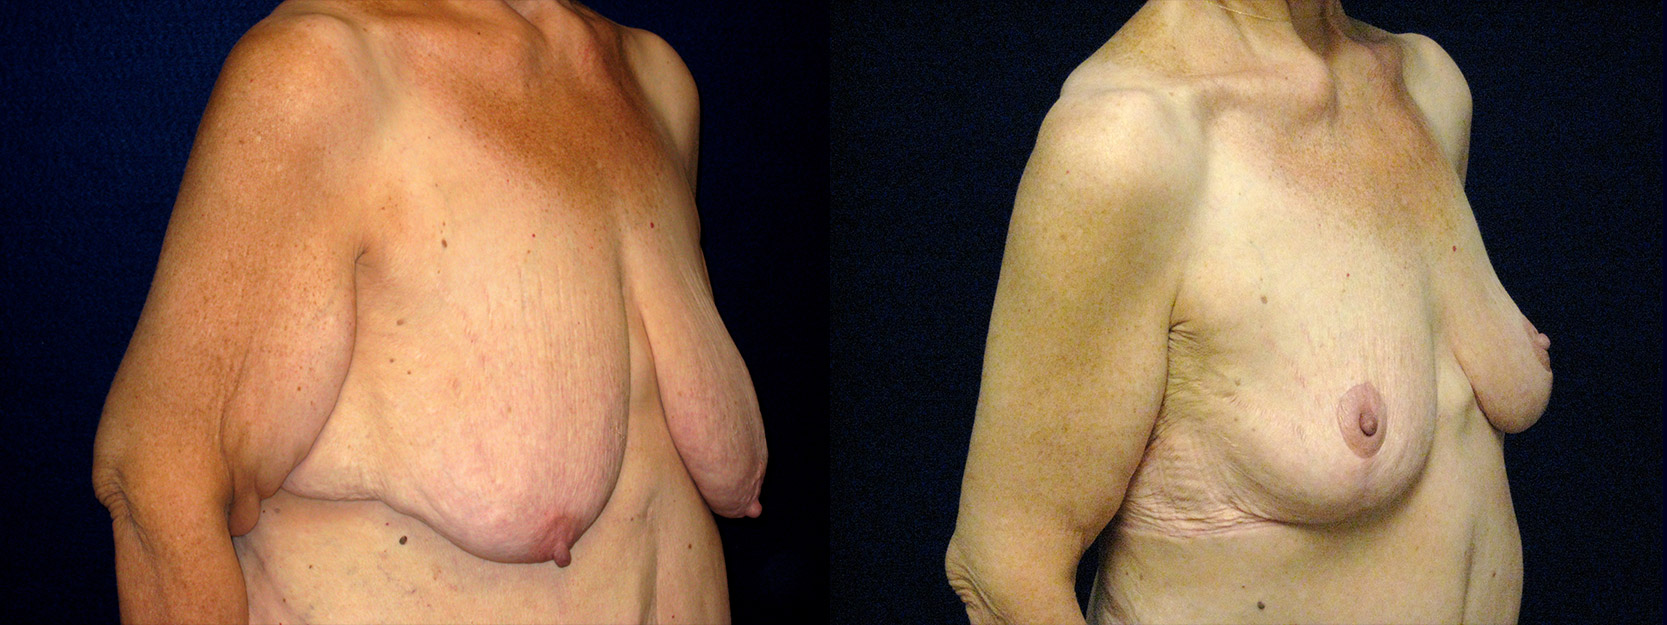 Right 3/4 View - Breast Reduction Mastopexy and Arm Lift After Massive Weight Loss